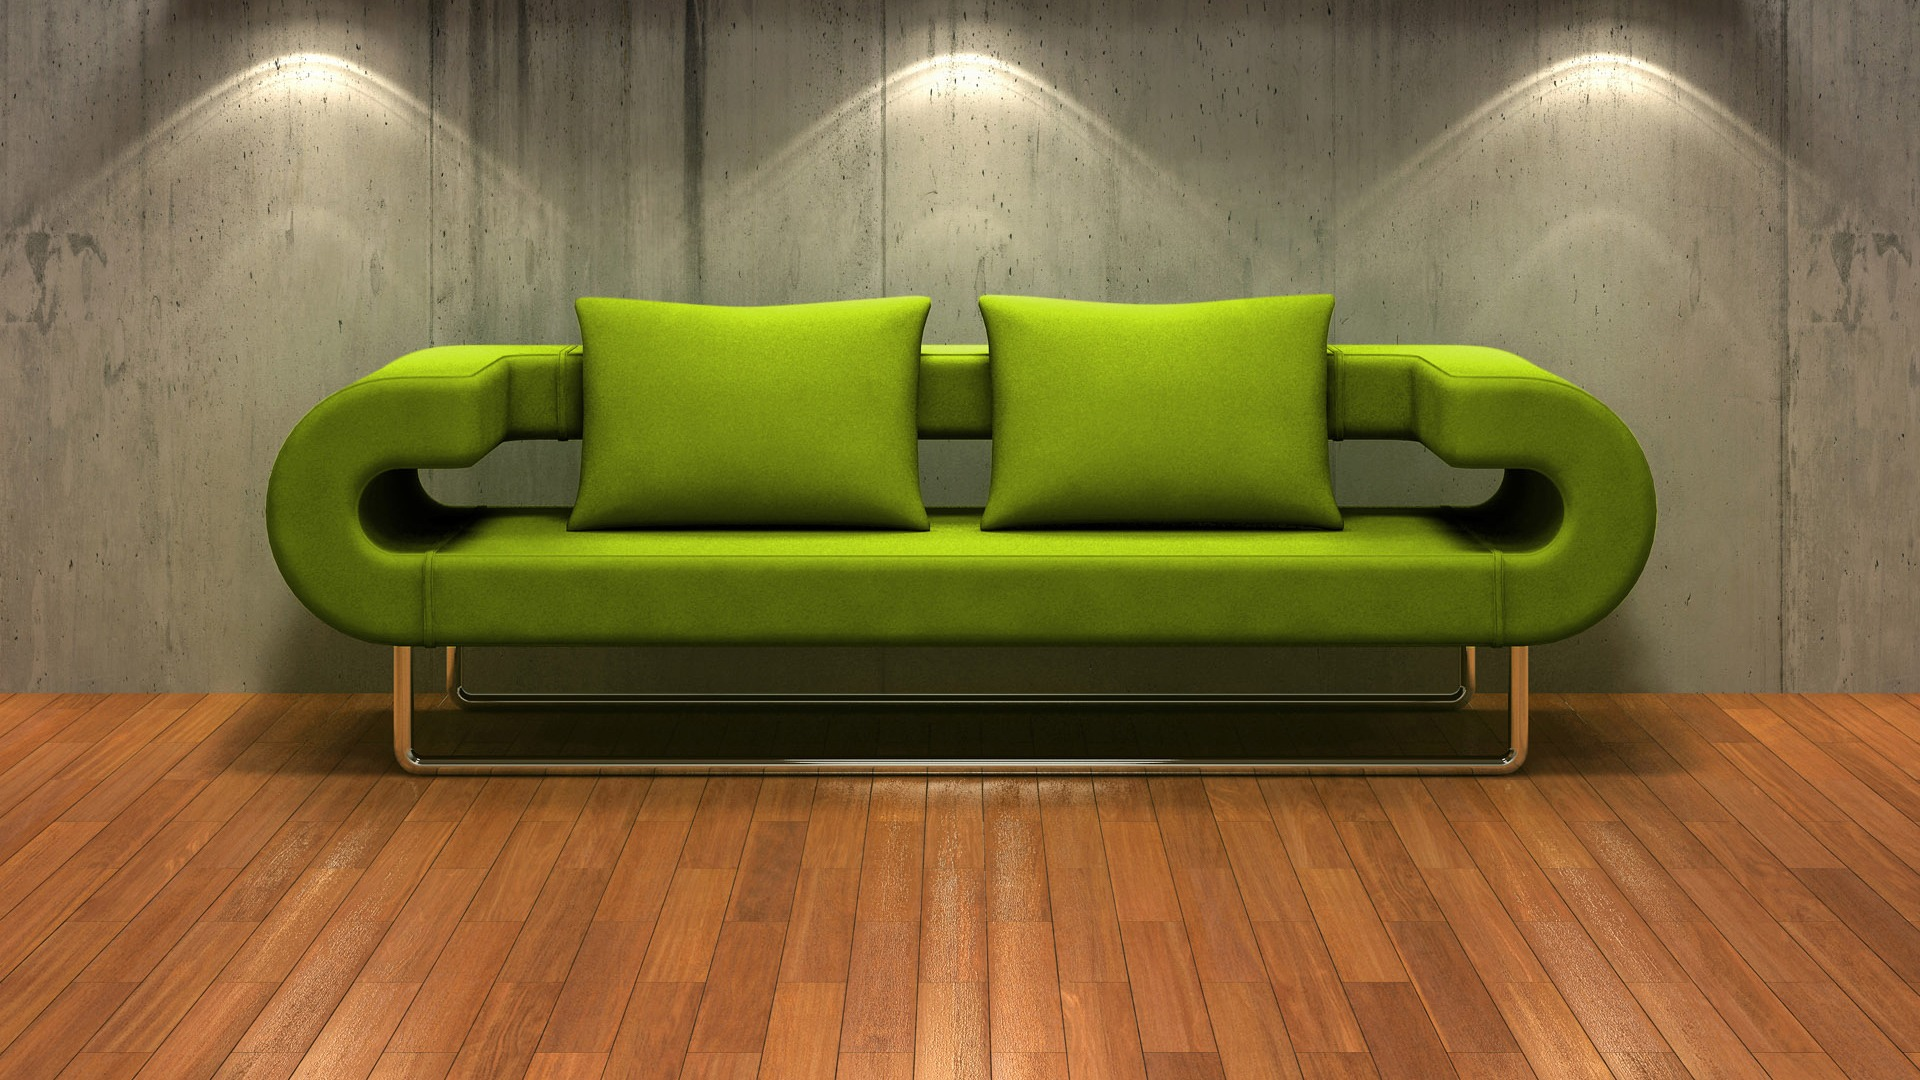 Couch Furniture Design what's the difference between sofa and couch?